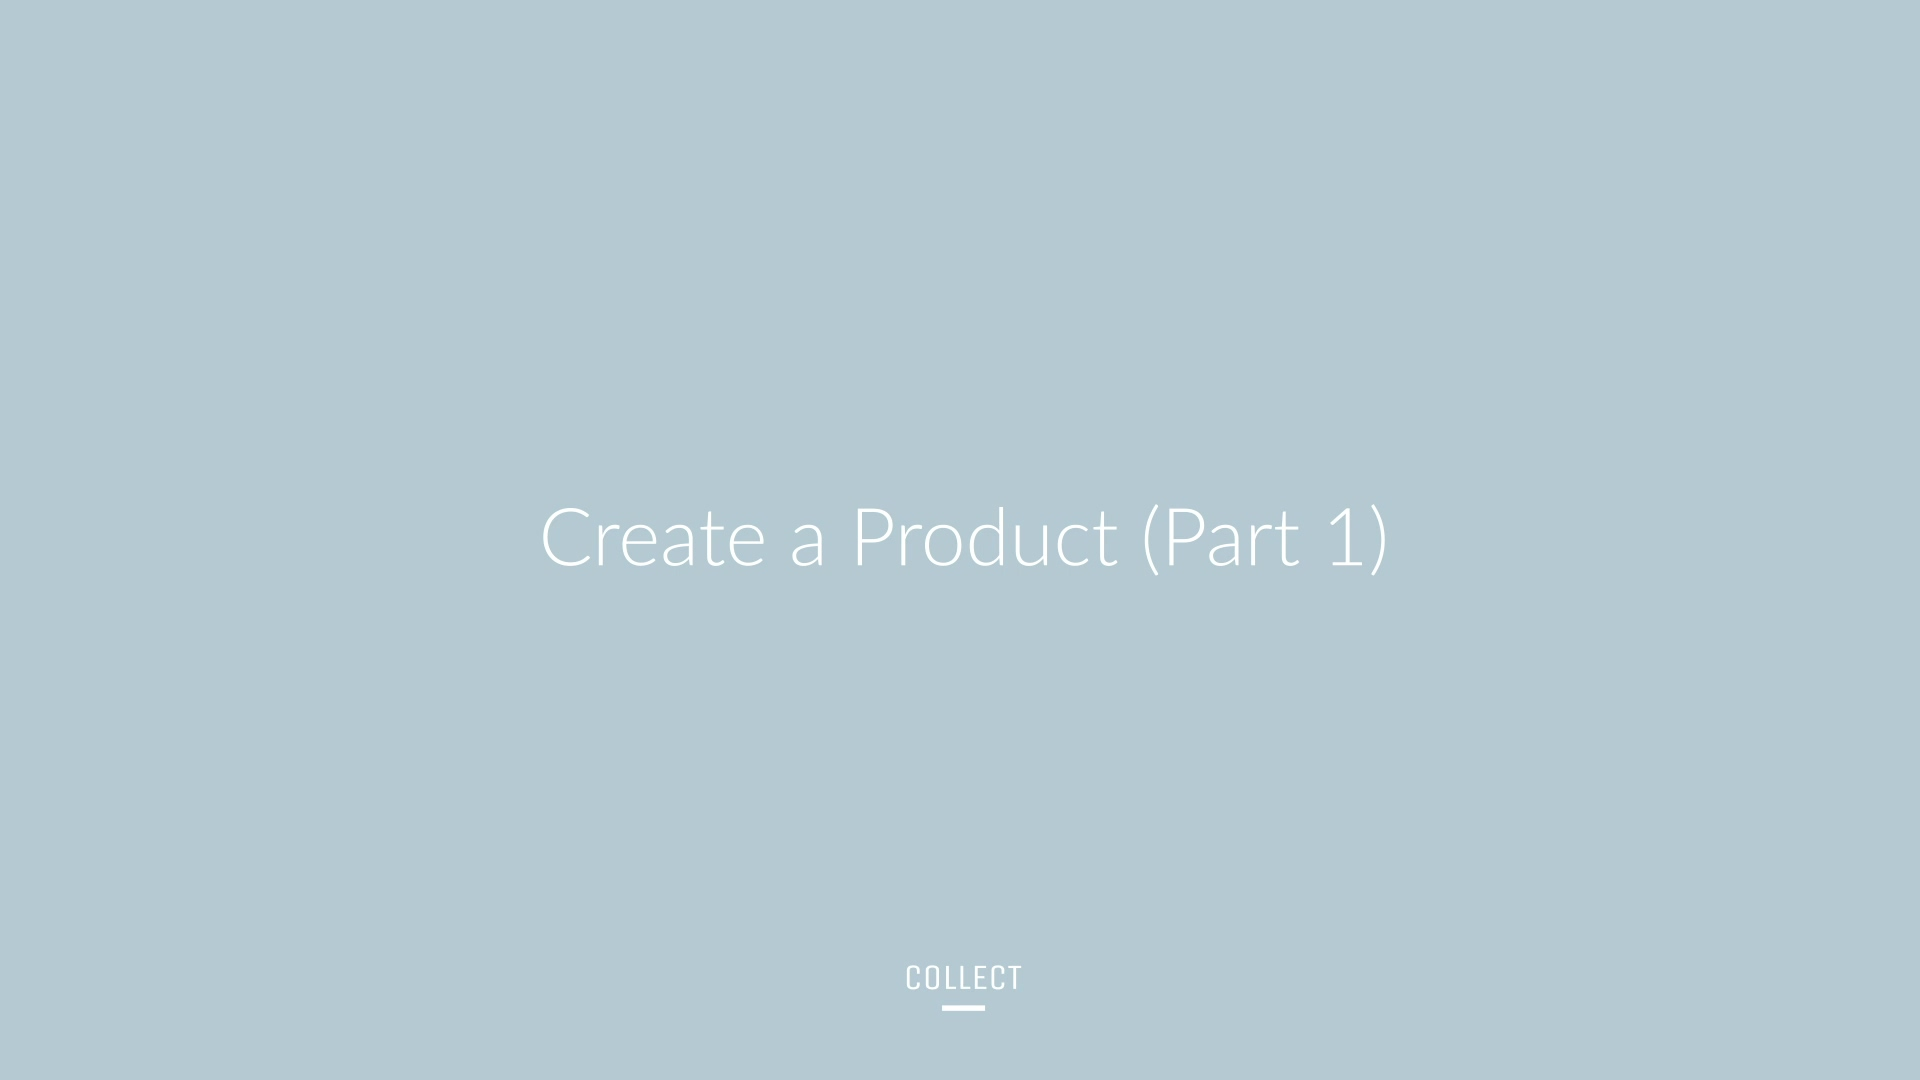 Brandboom Support - CREATE - Create a Product (Part 1)